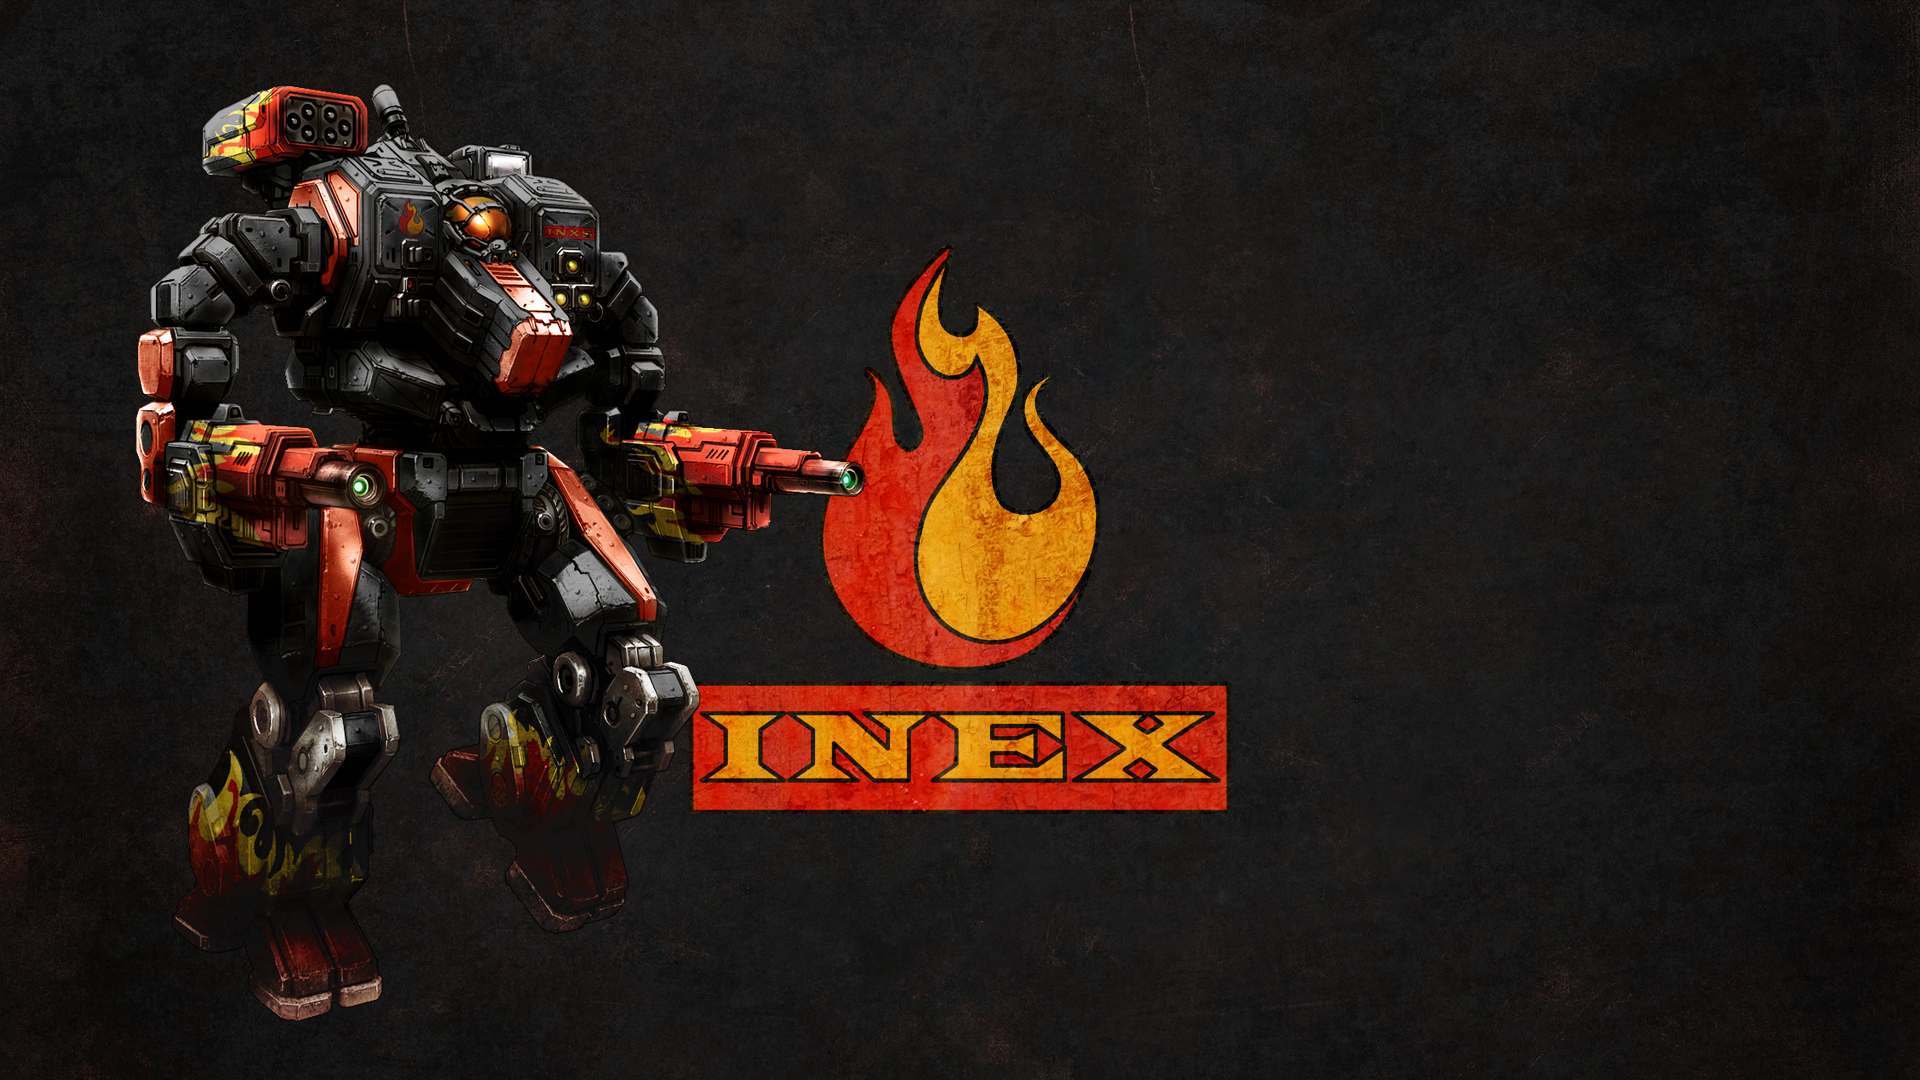 Wallpaper MWO Hellbringer and INEX logo by Odanan 1920x1080